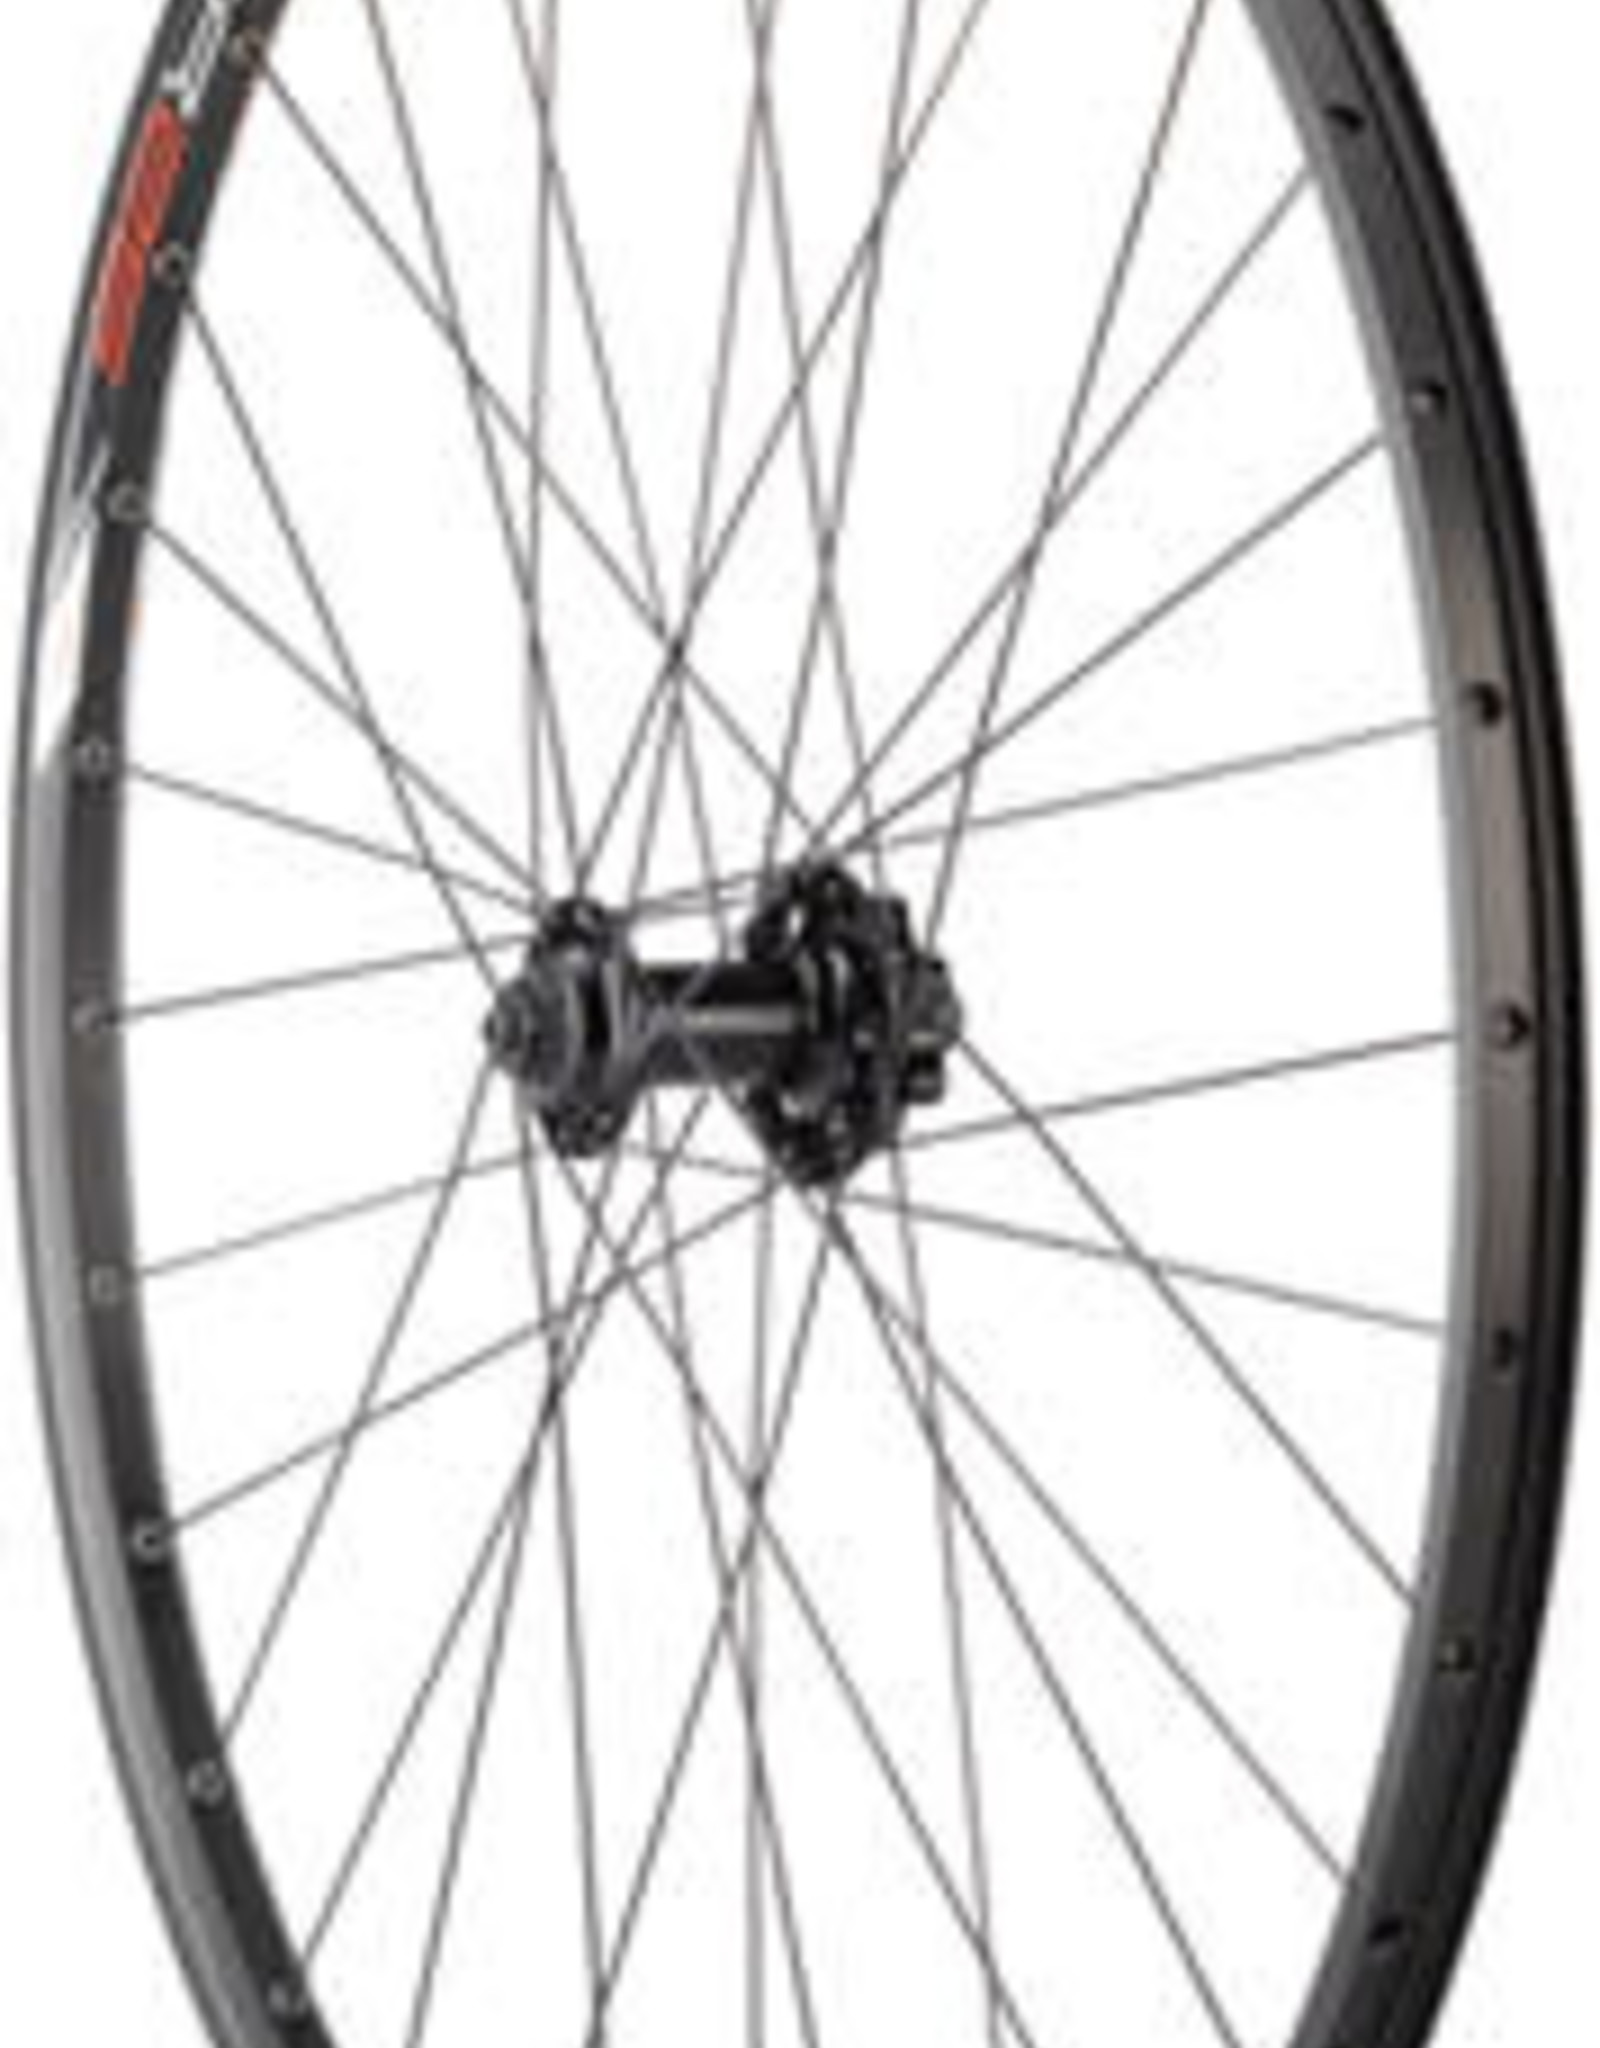 """Quality Wheels Value Double Wall Series Disc Front Wheel - 29"""", QR x 100mm, 6-Bolt, Black, Clincher"""